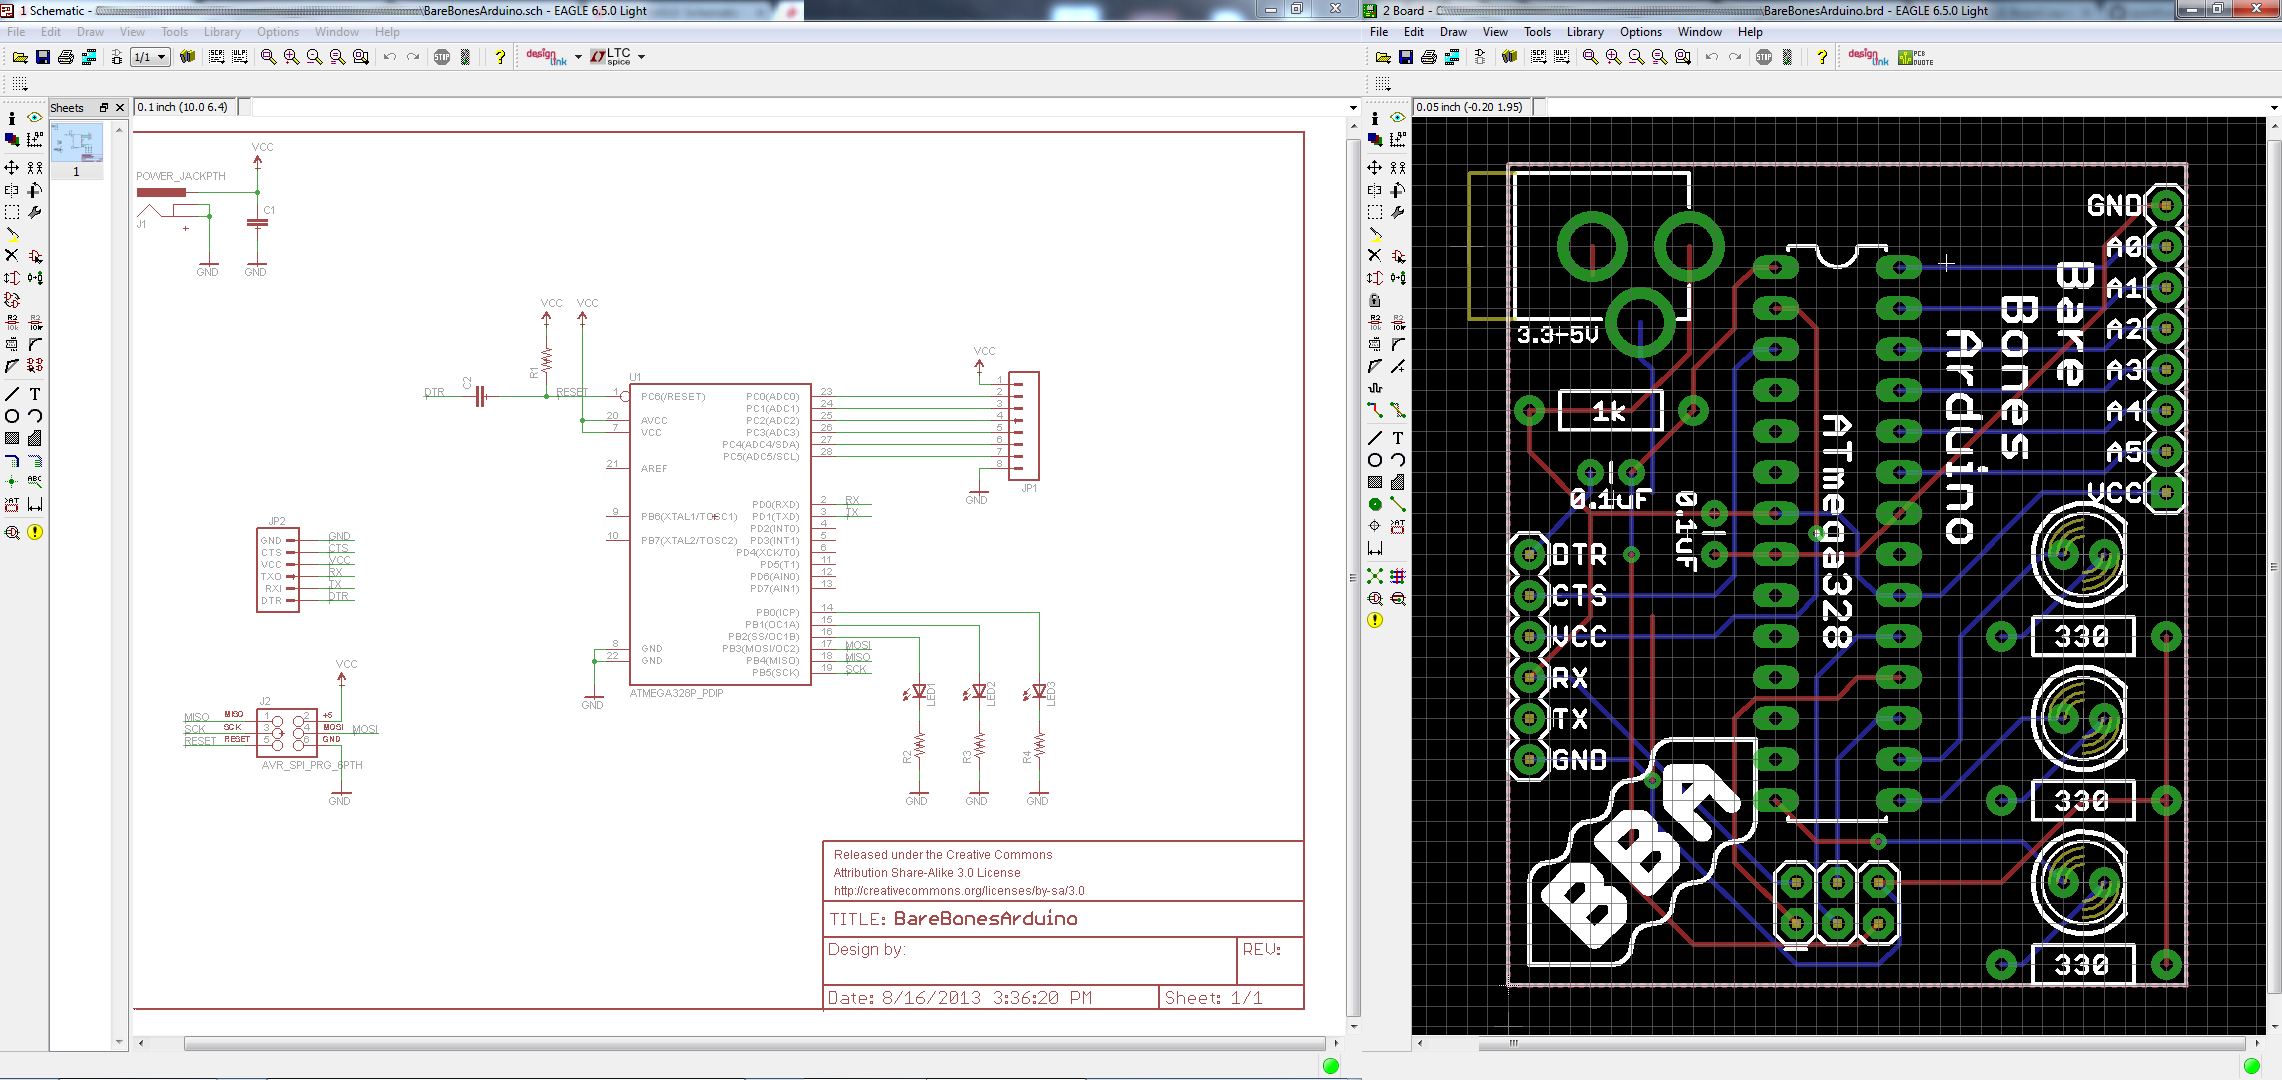 Using Eagle Schematic 12v Power Wiring And Board Layout From Tutorials